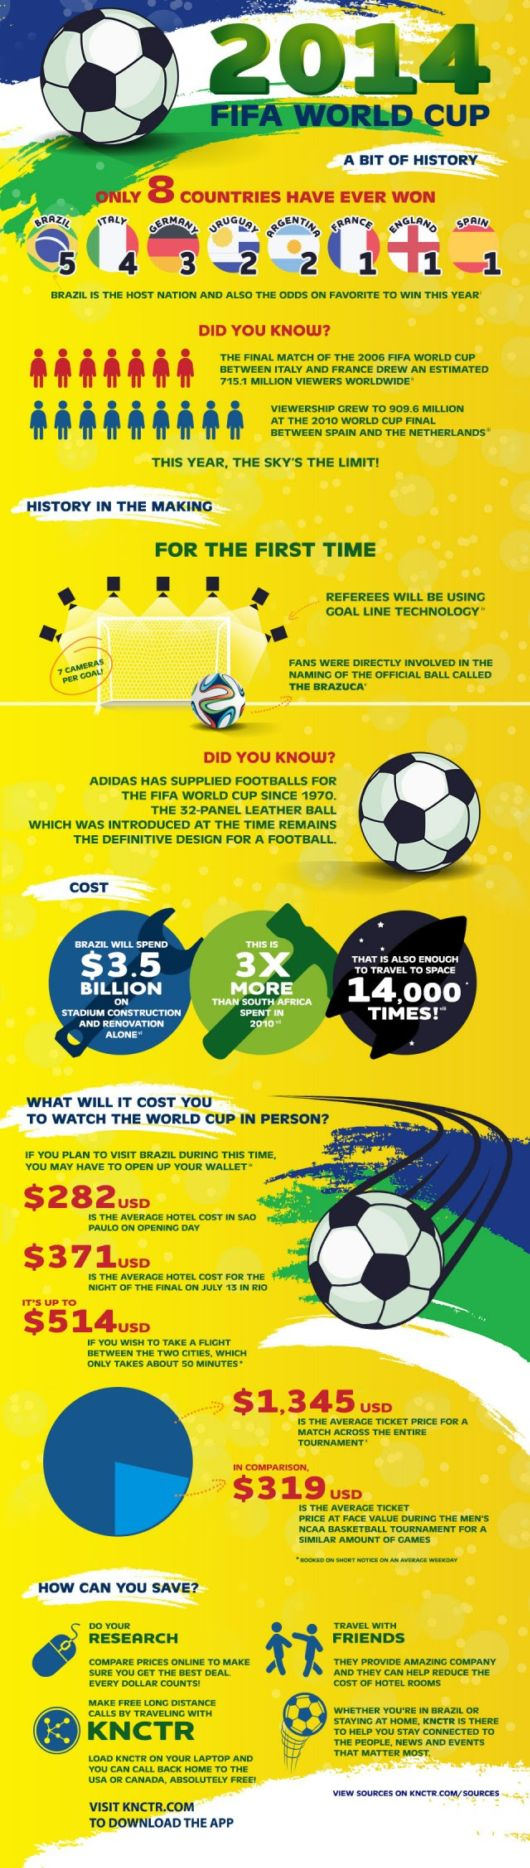 Facts About The 2014 FIFA World Cup